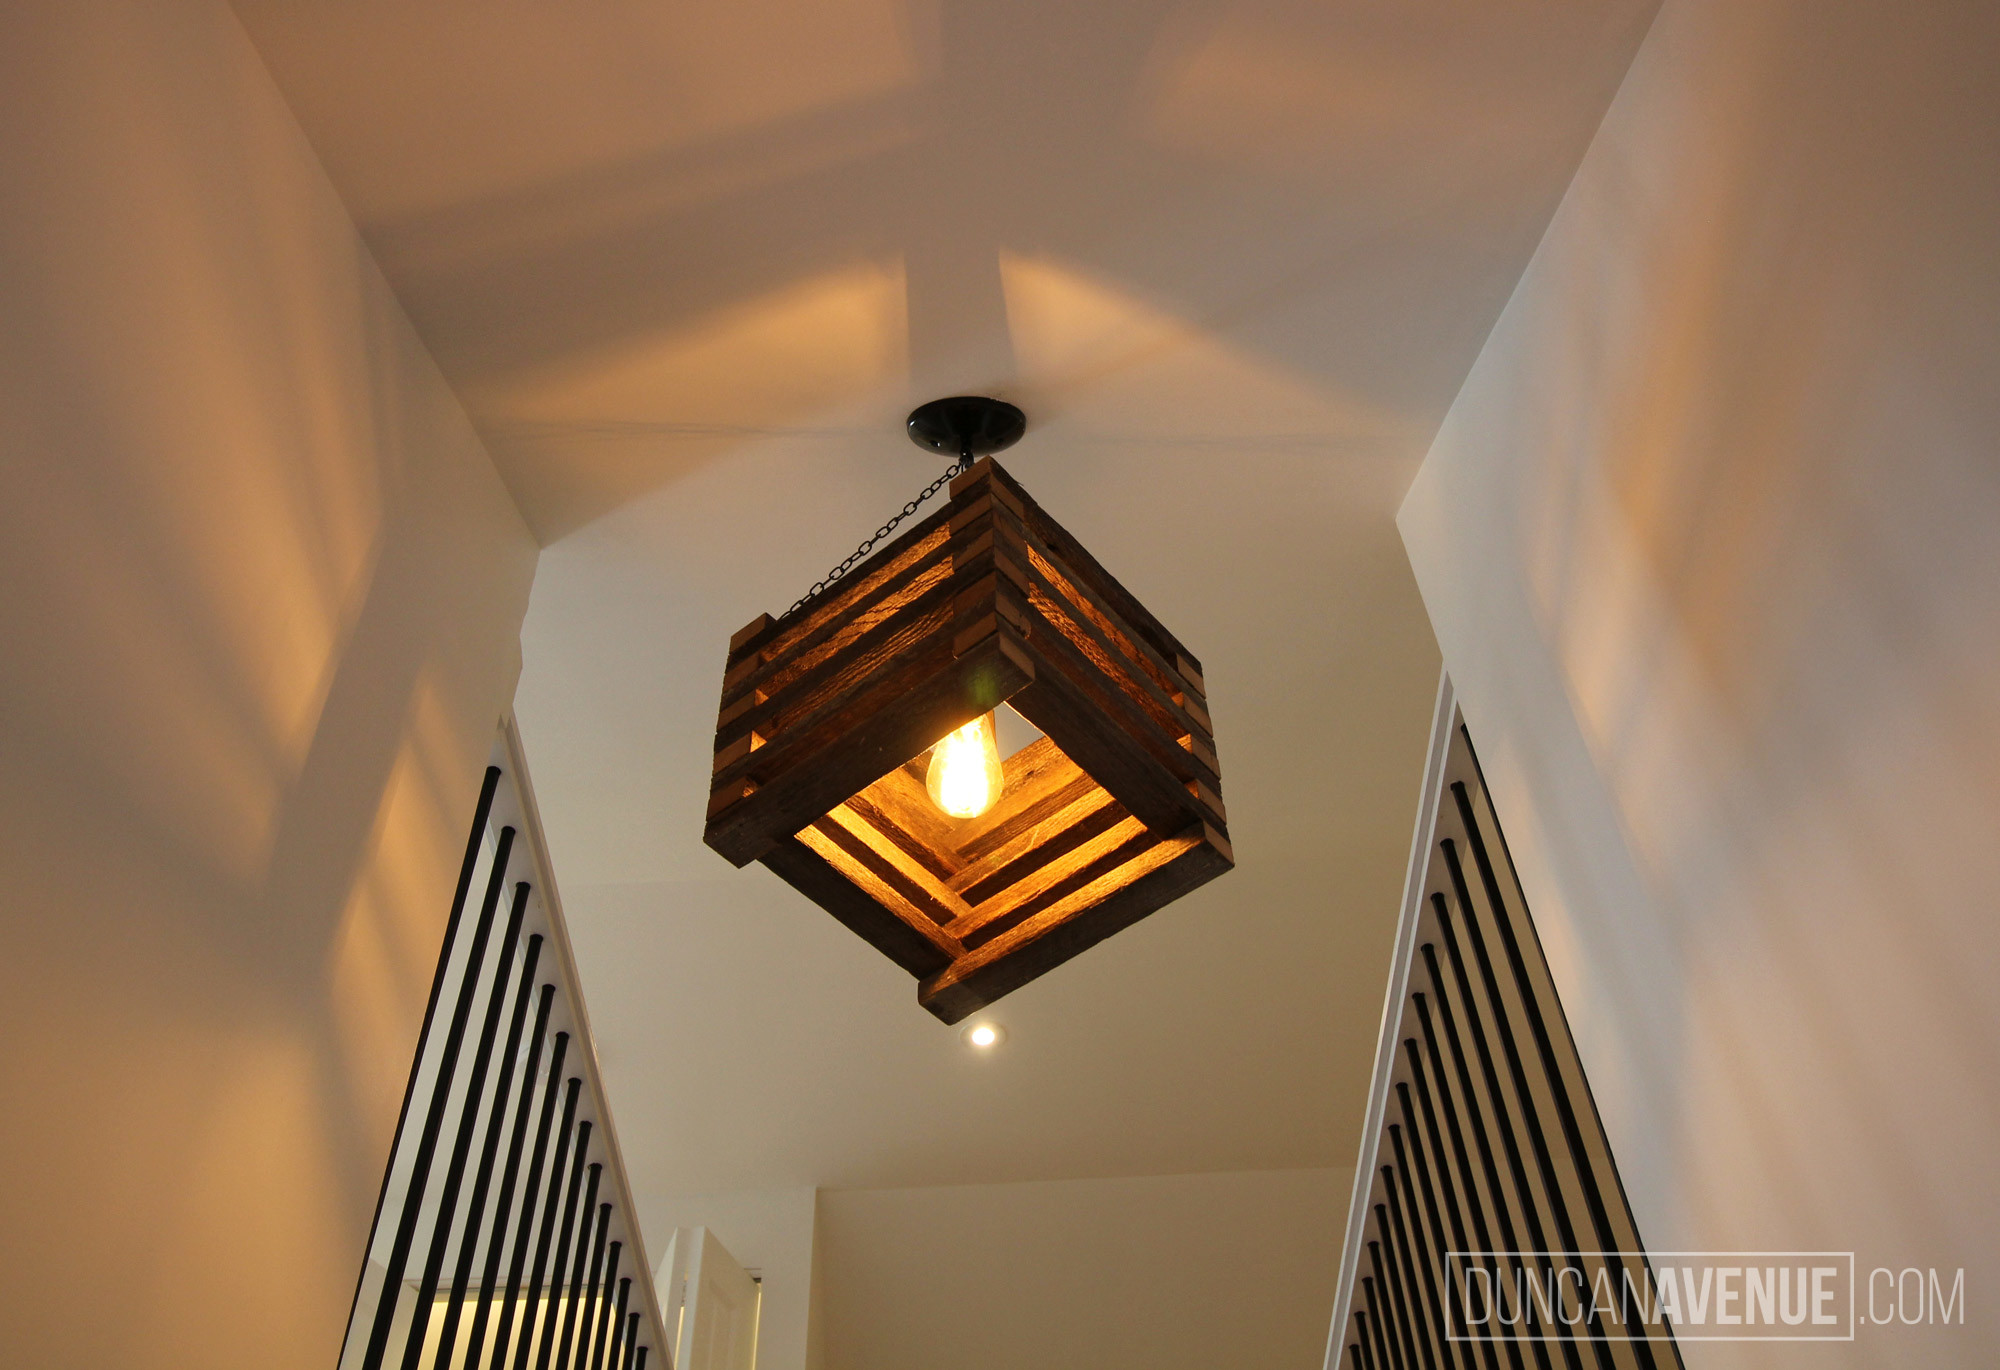 View images custom lighting design lamps light fixtures architectural